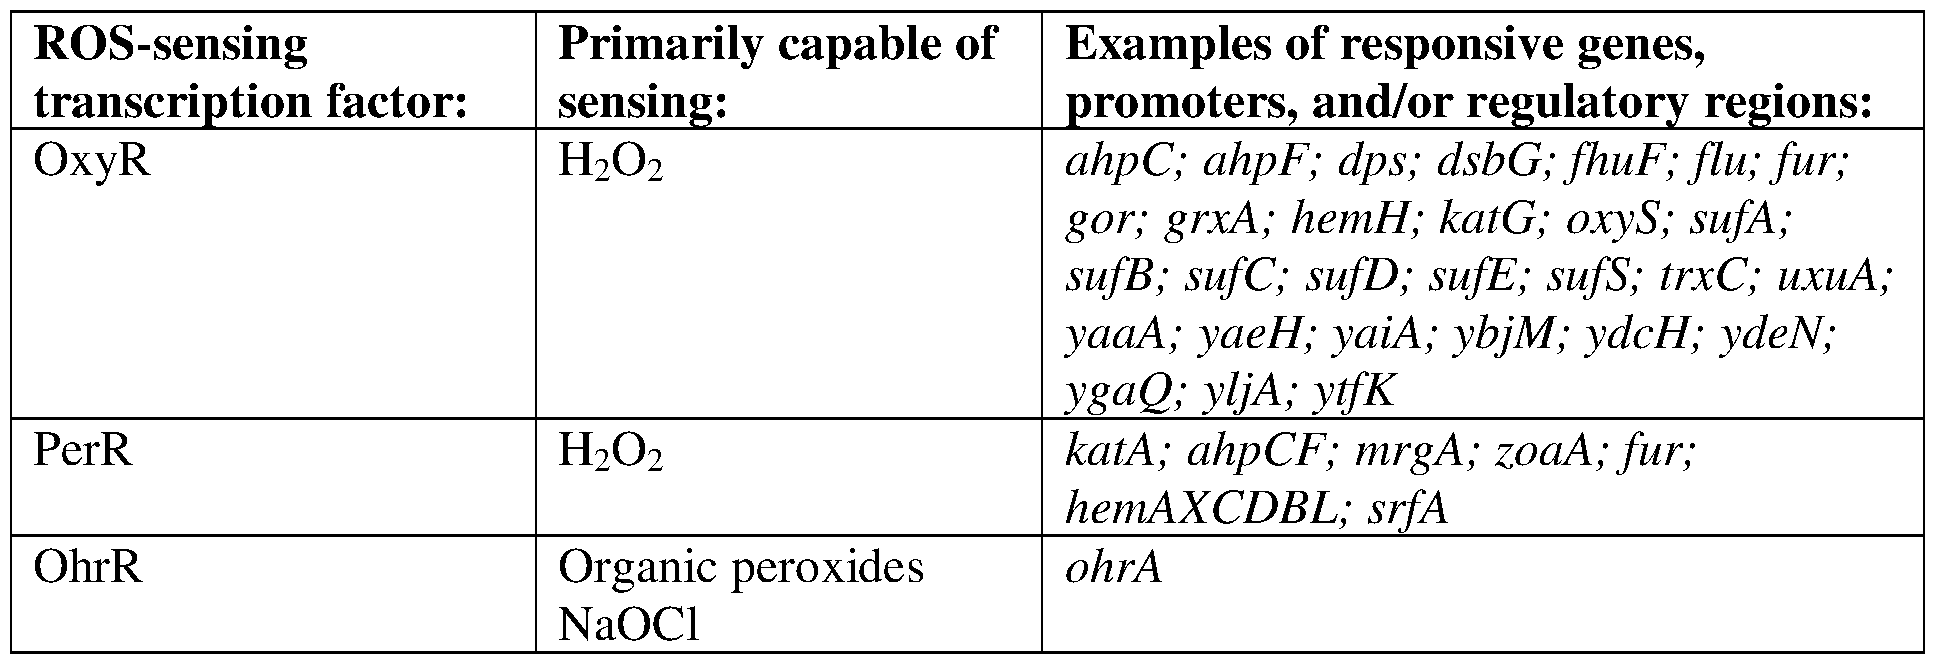 WO2017123675A1 - Microorganisms programmed to produce immune